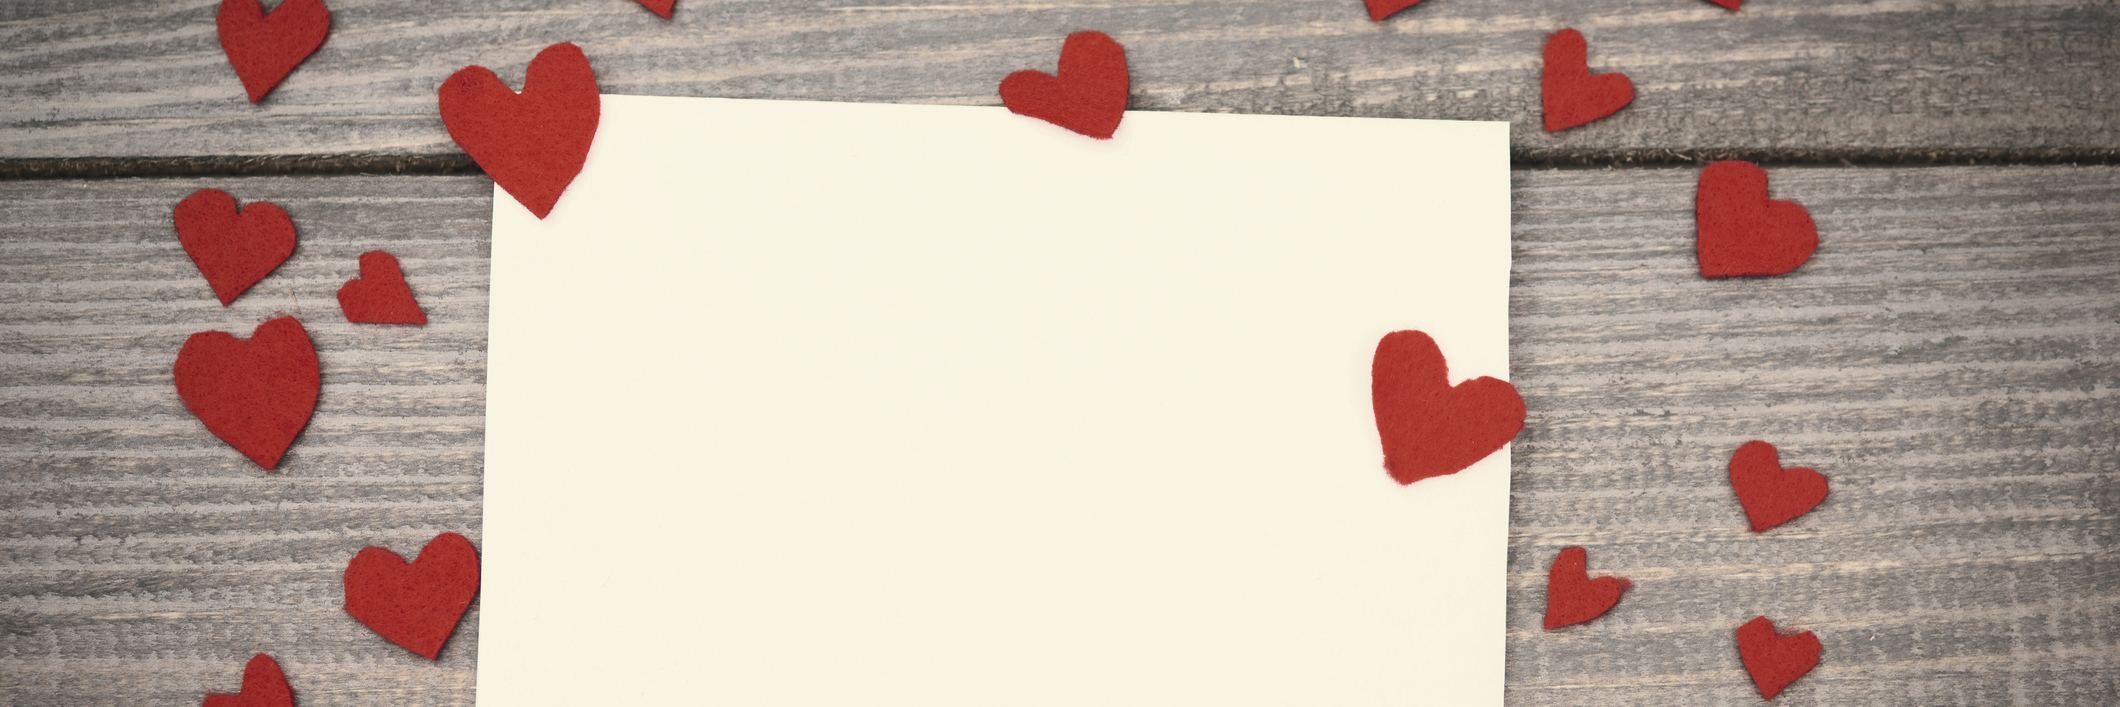 letter surrounded by red hearts